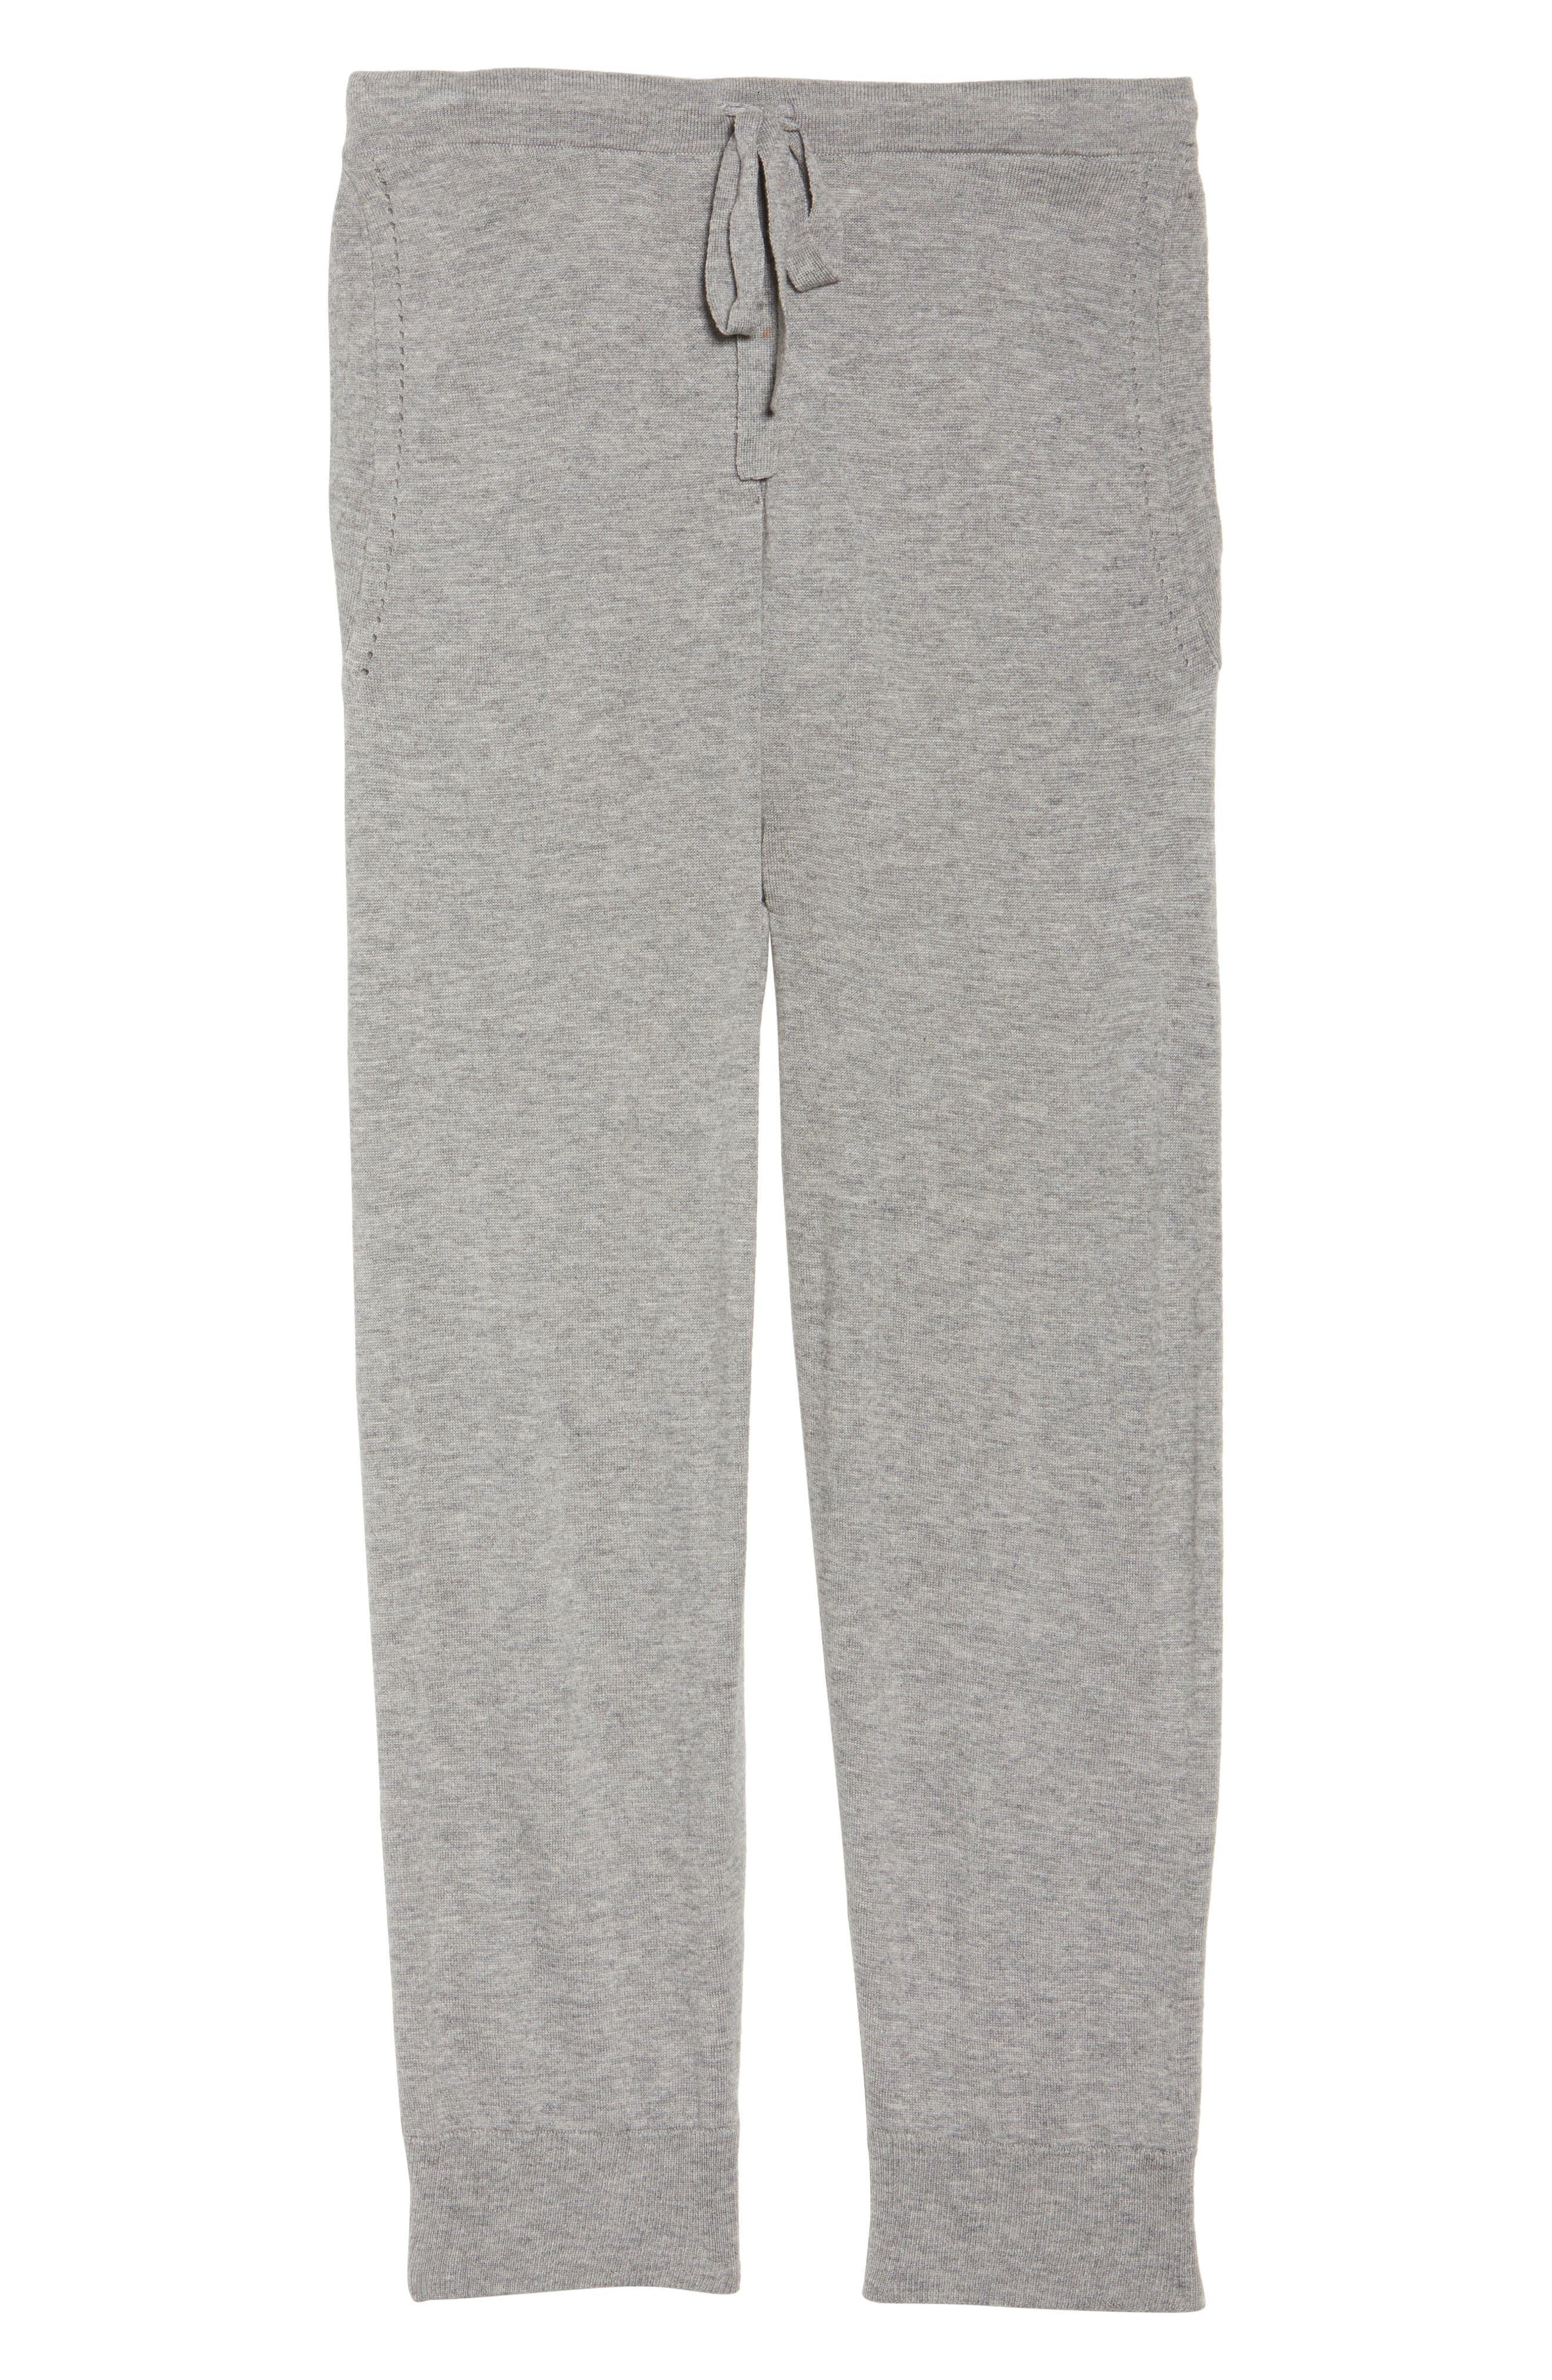 Myla Lounge Pants,                             Alternate thumbnail 4, color,                             Heather Grey